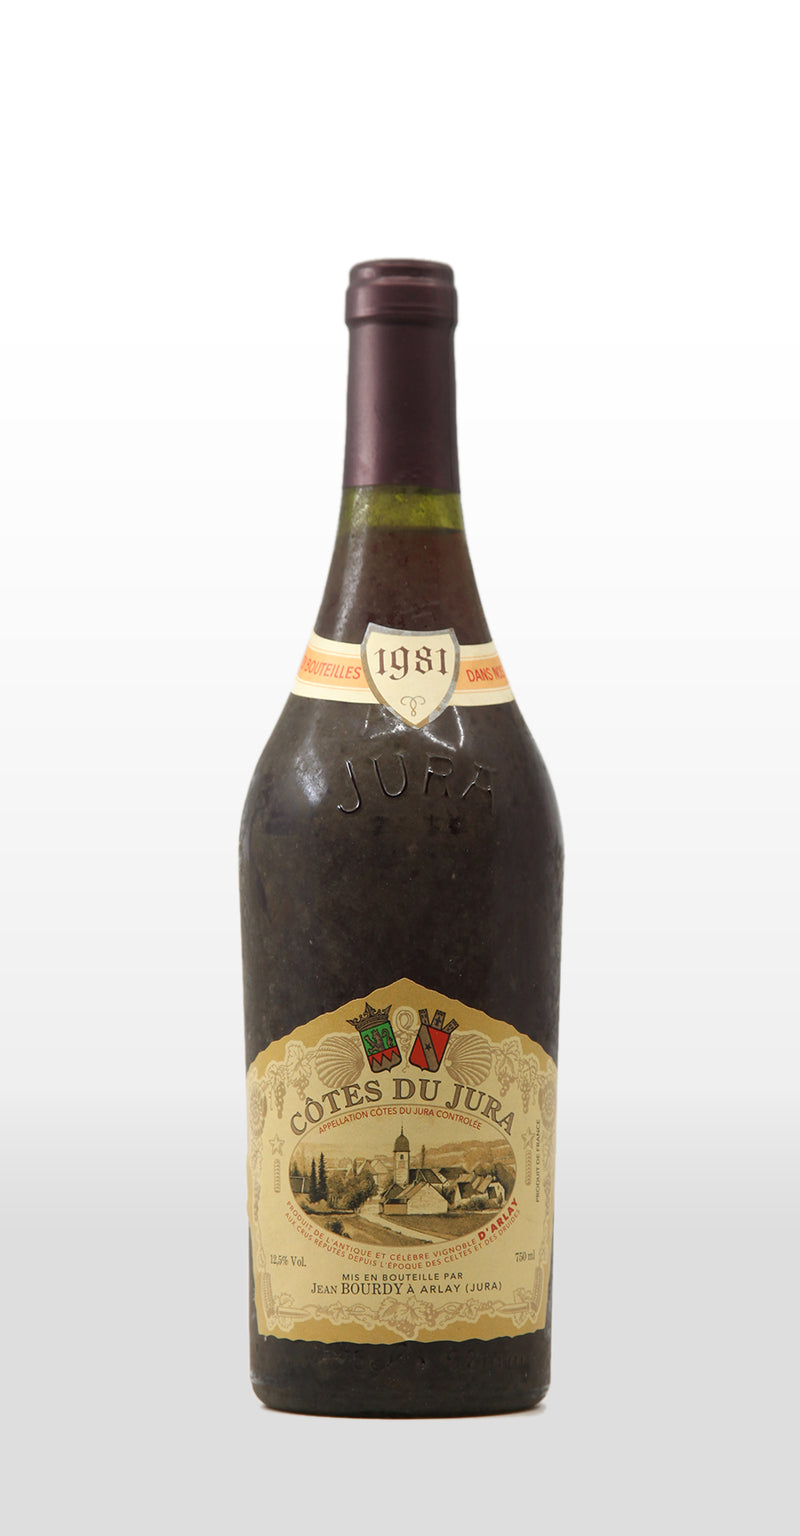 JEAN BOURDY COTES DU JURA ROUGE 1981 750ML